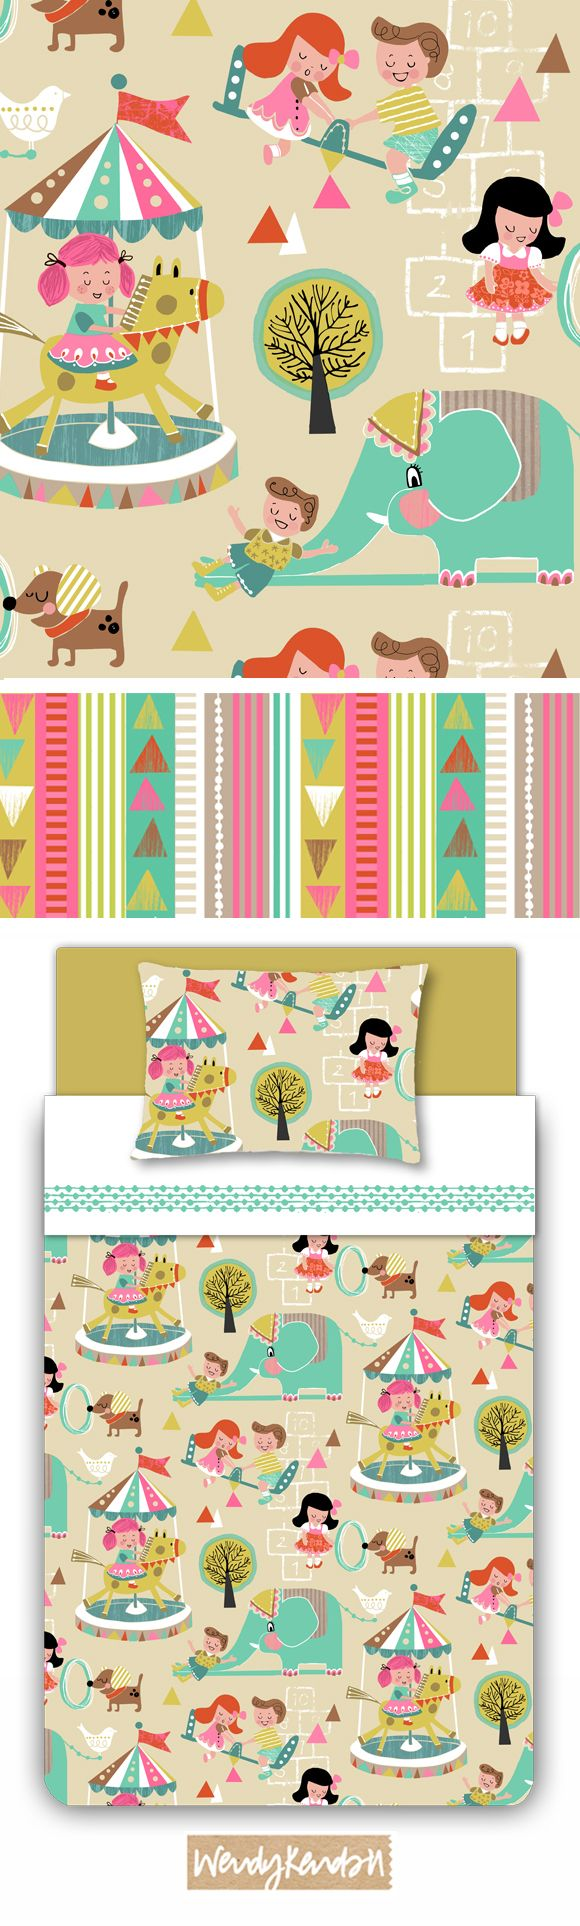 Wendy Kendall Designs | Freelance Surface Pattern Designer | Lets Play kids' pattern